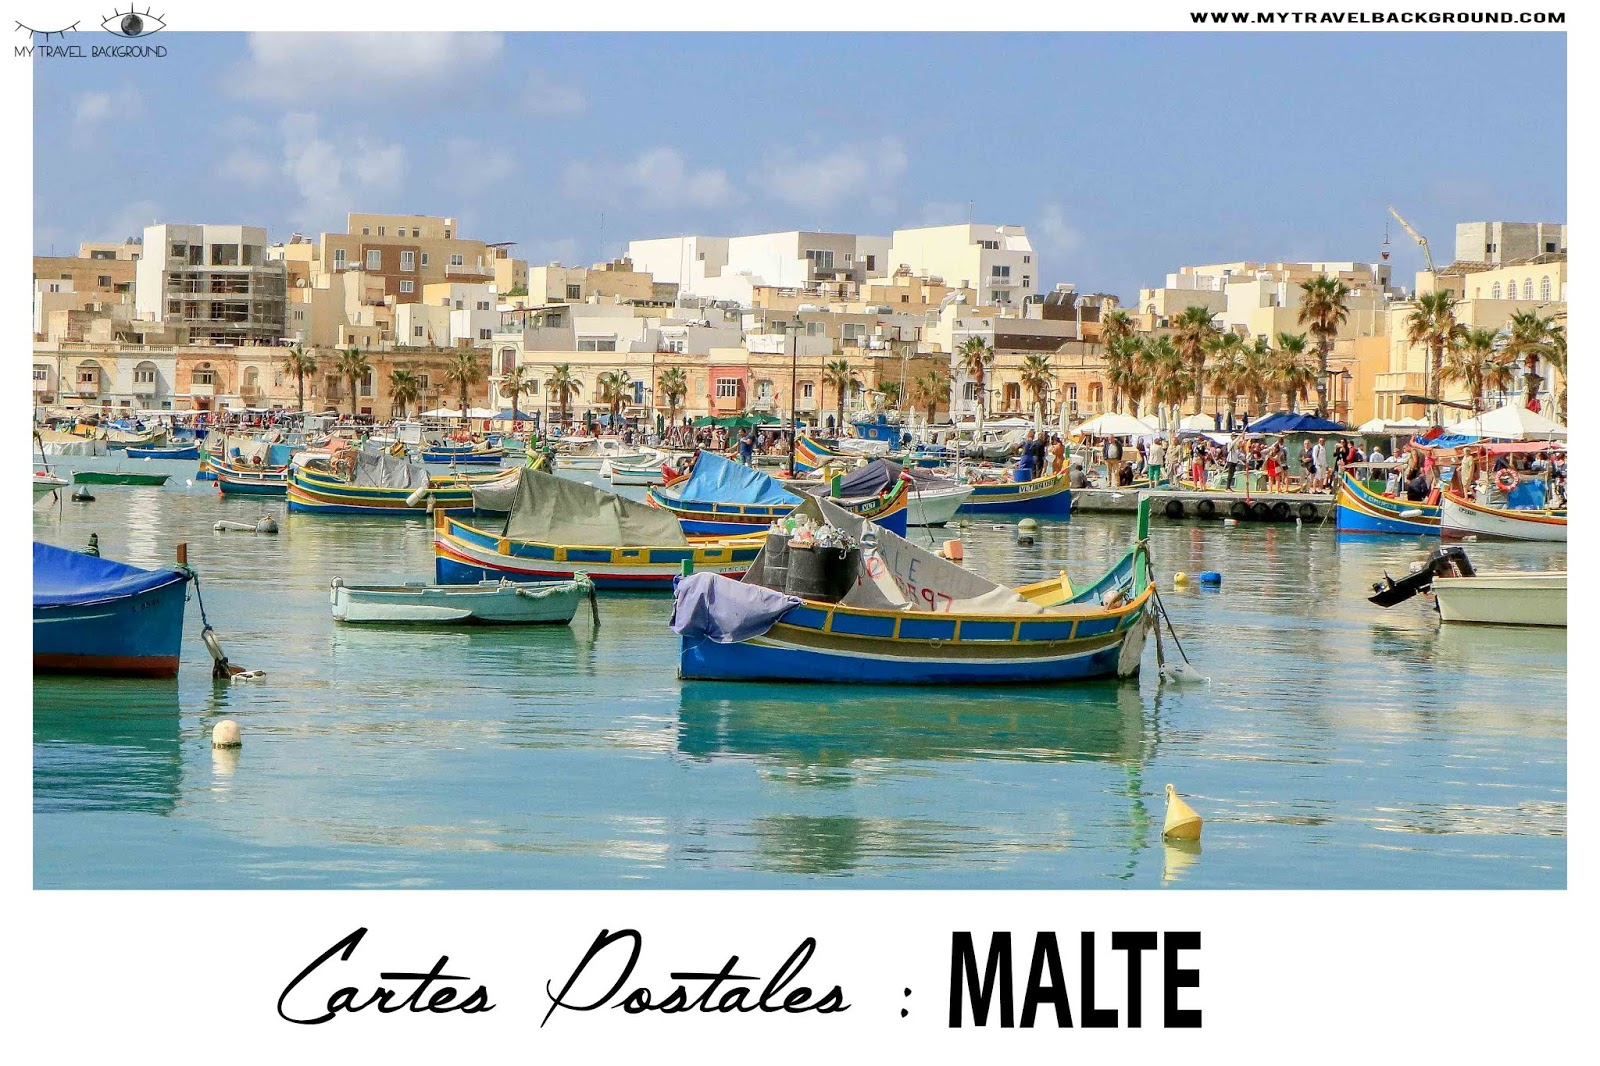 My Travel Background : cartes postales de Malte